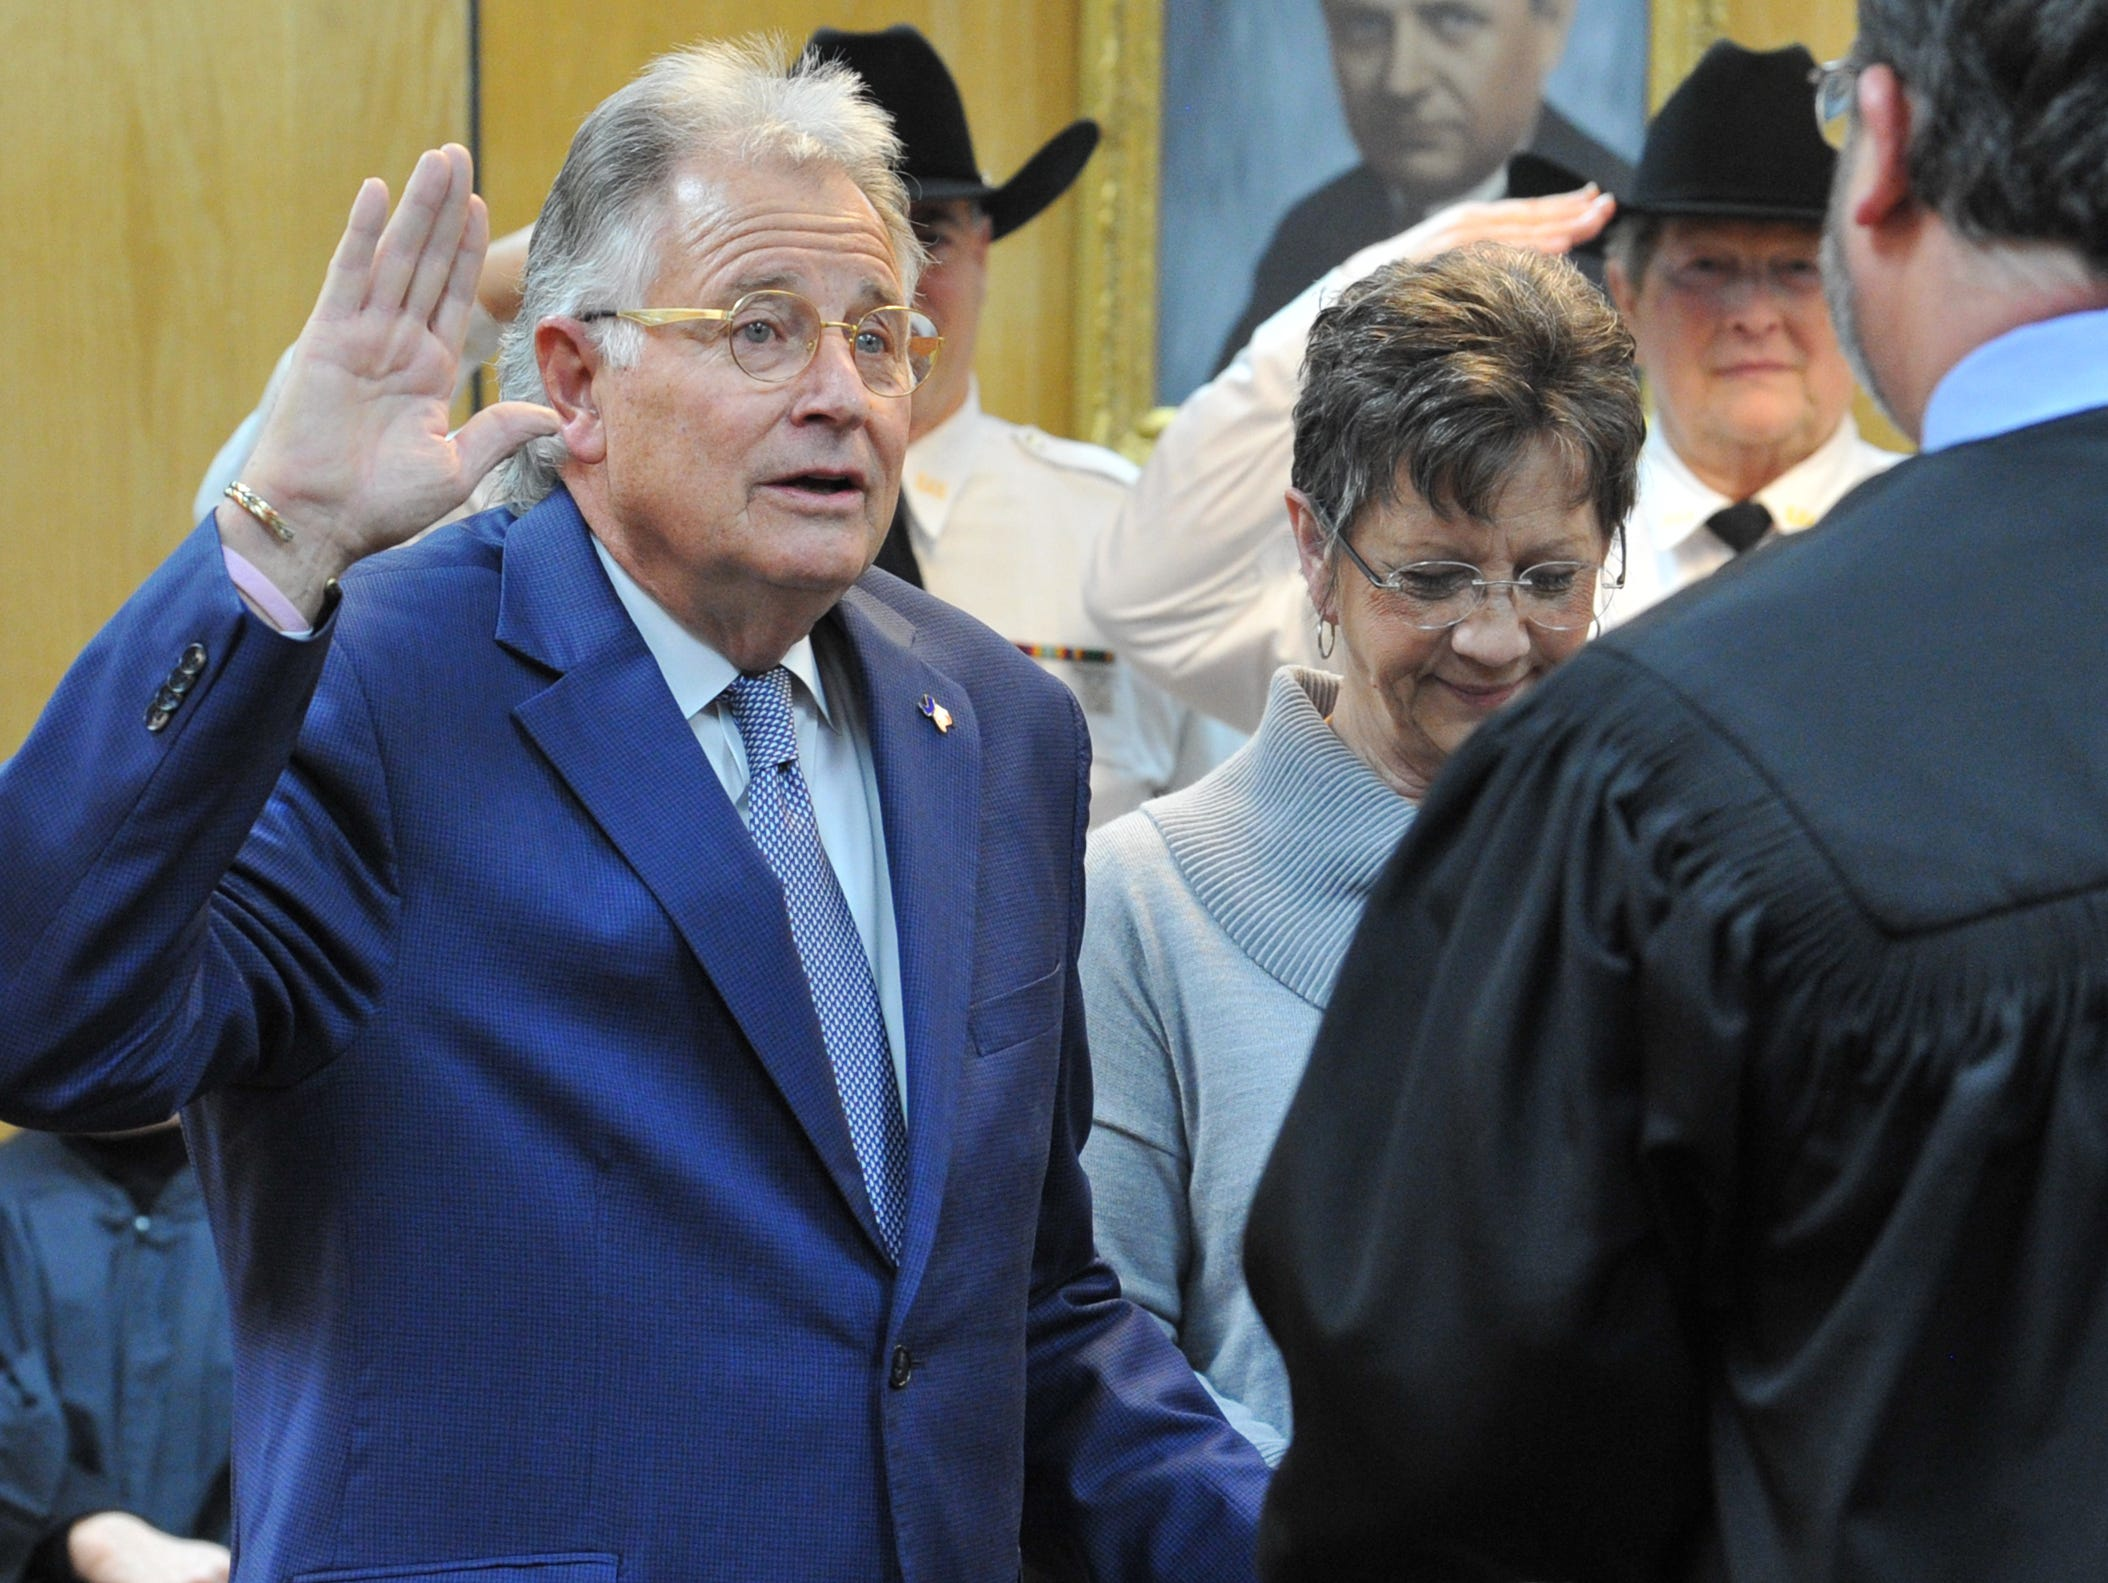 County Treasurer R.J Bob Hampton was sworn in during a ceremony held in the 30th district courtroom, Tuesday morning.